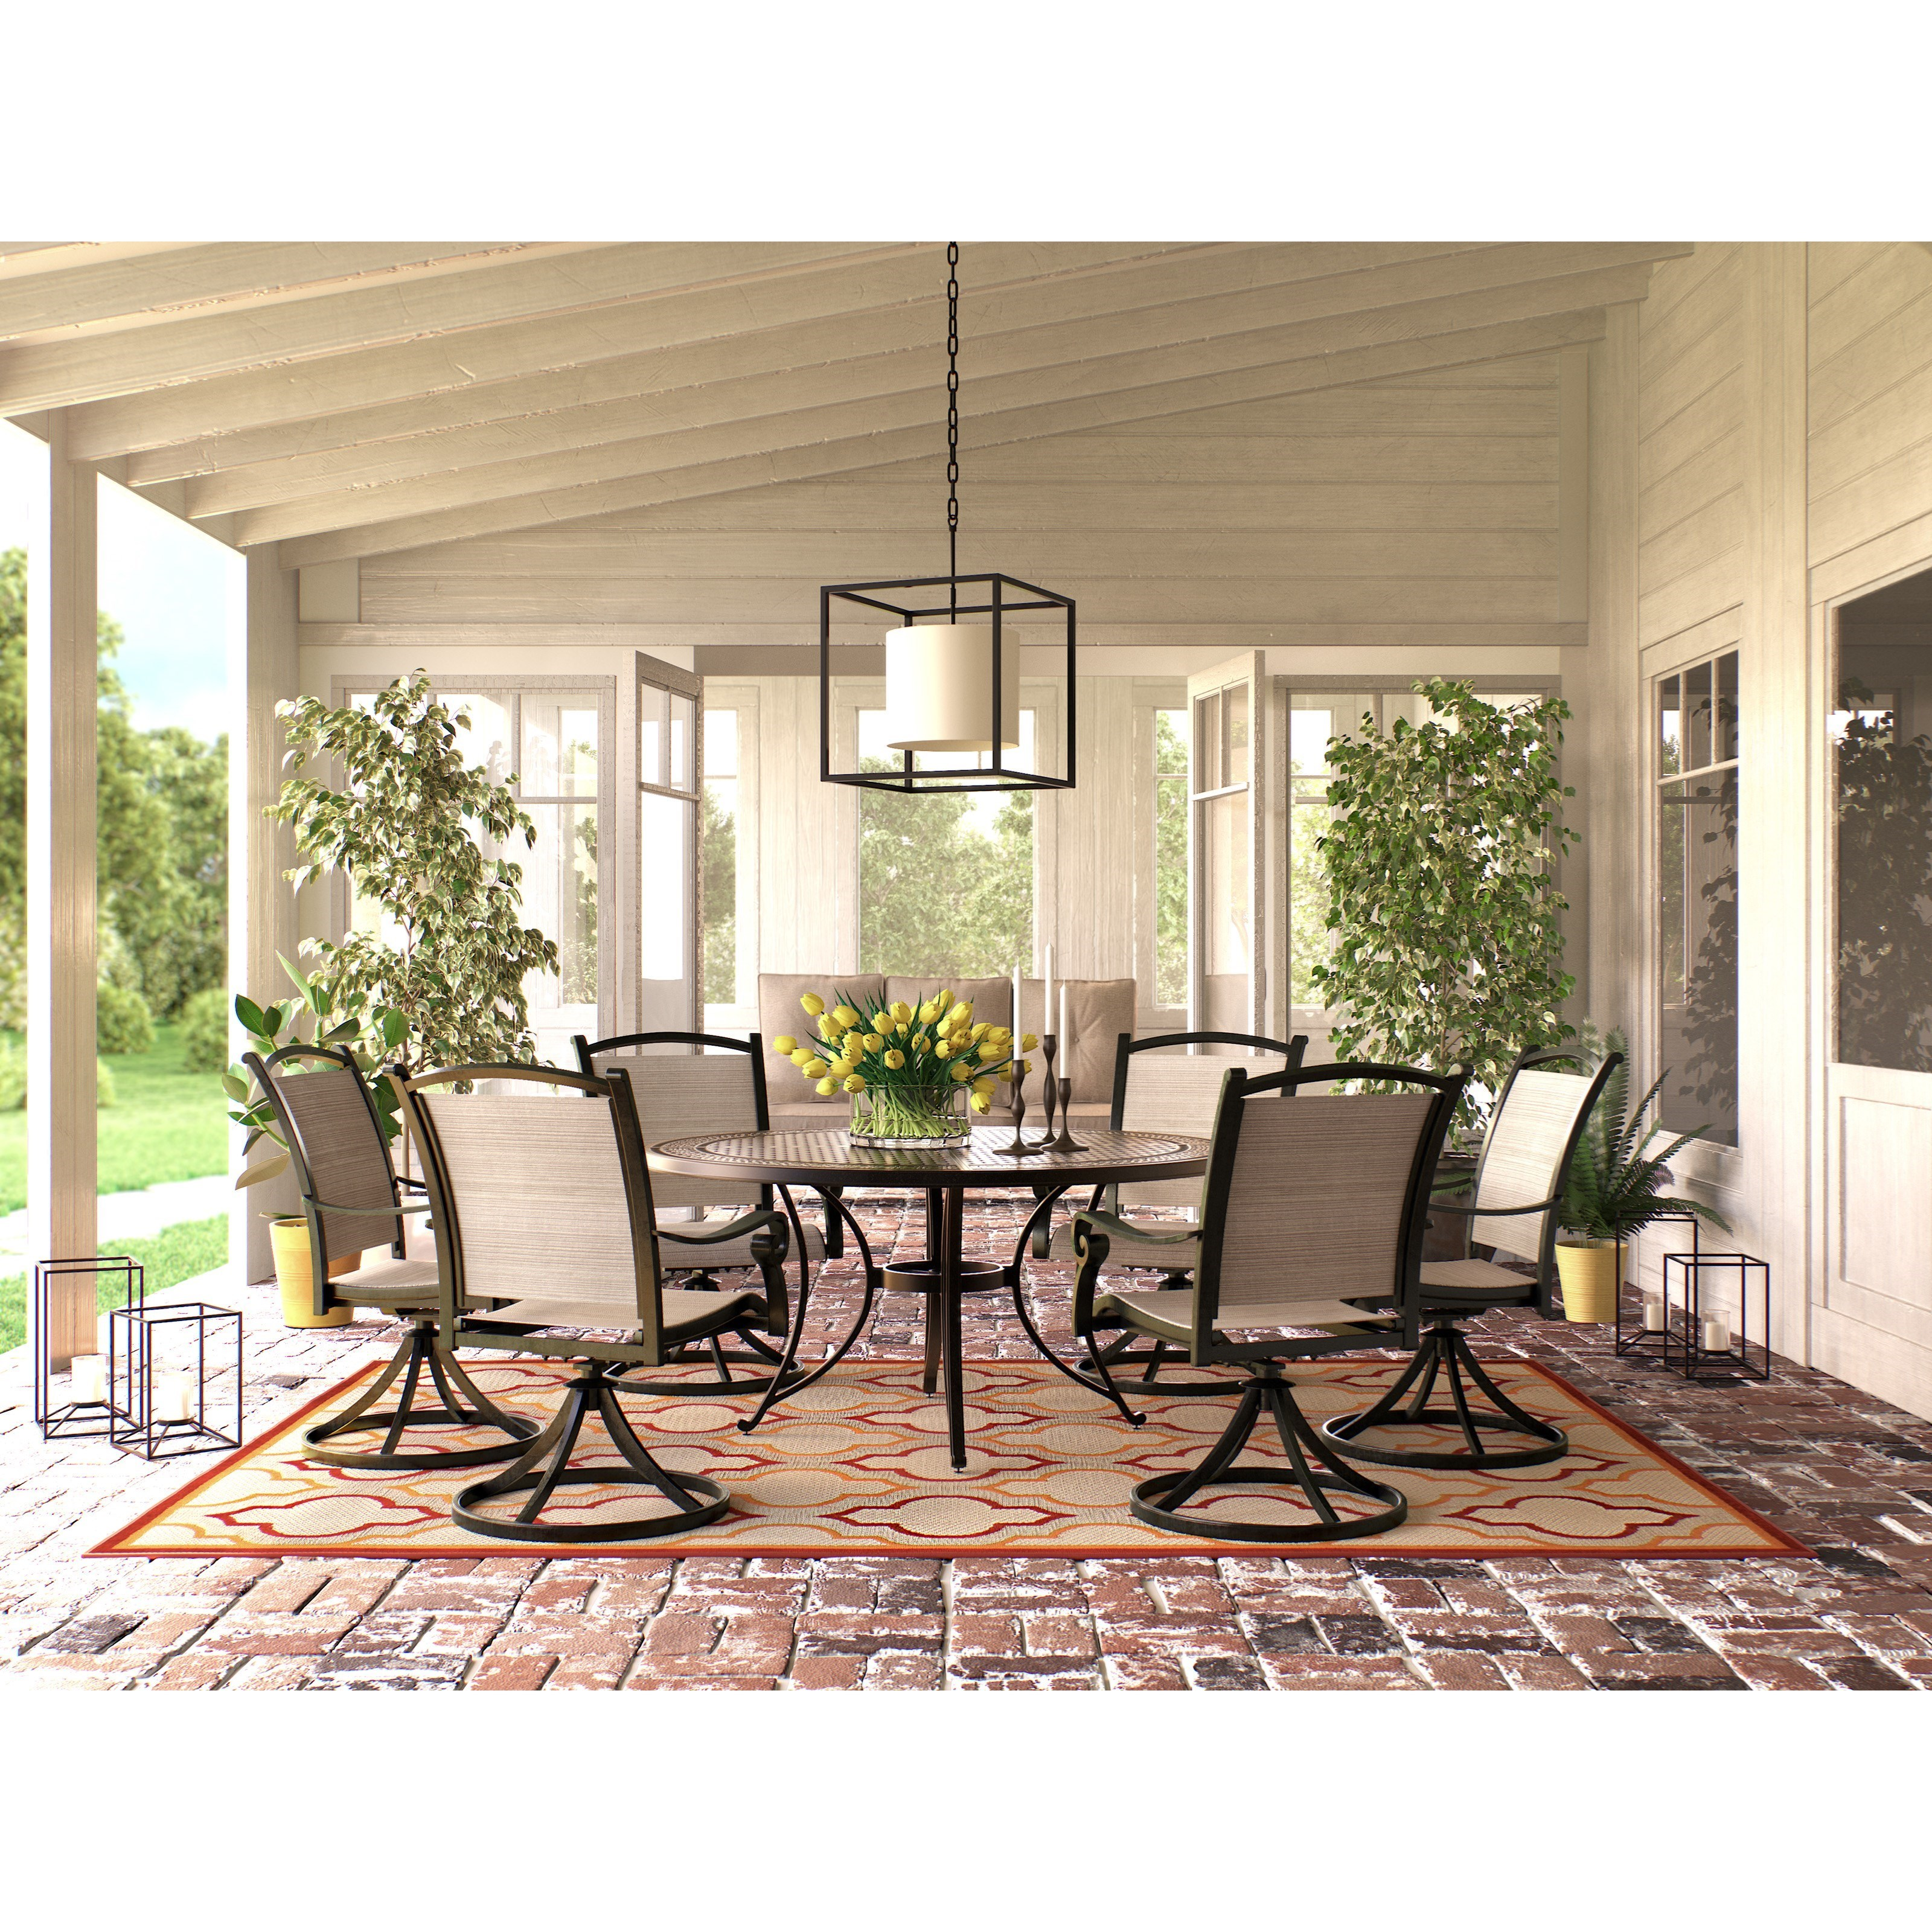 Burnella 7 Piece Outdoor Dining Set by Signature Design by Ashley at Lapeer Furniture & Mattress Center